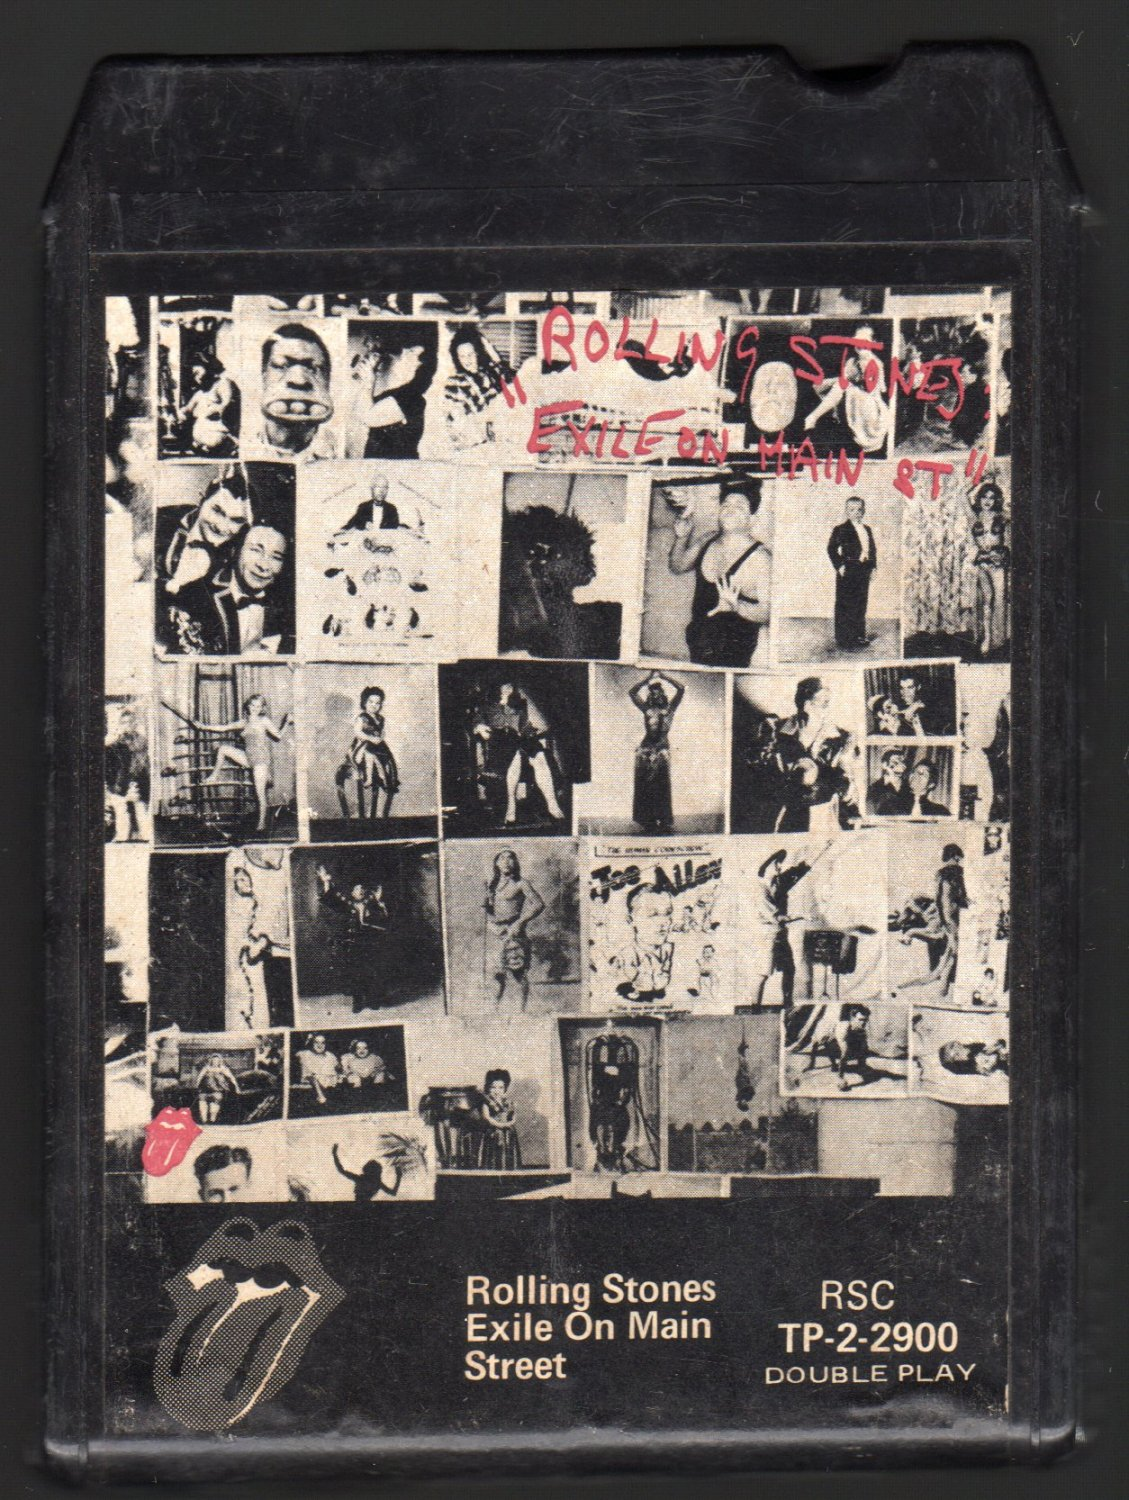 Rolling Stones - Exile On Main Street 1972 MUSIDOR Double Play A4 8-TRACK TAPE